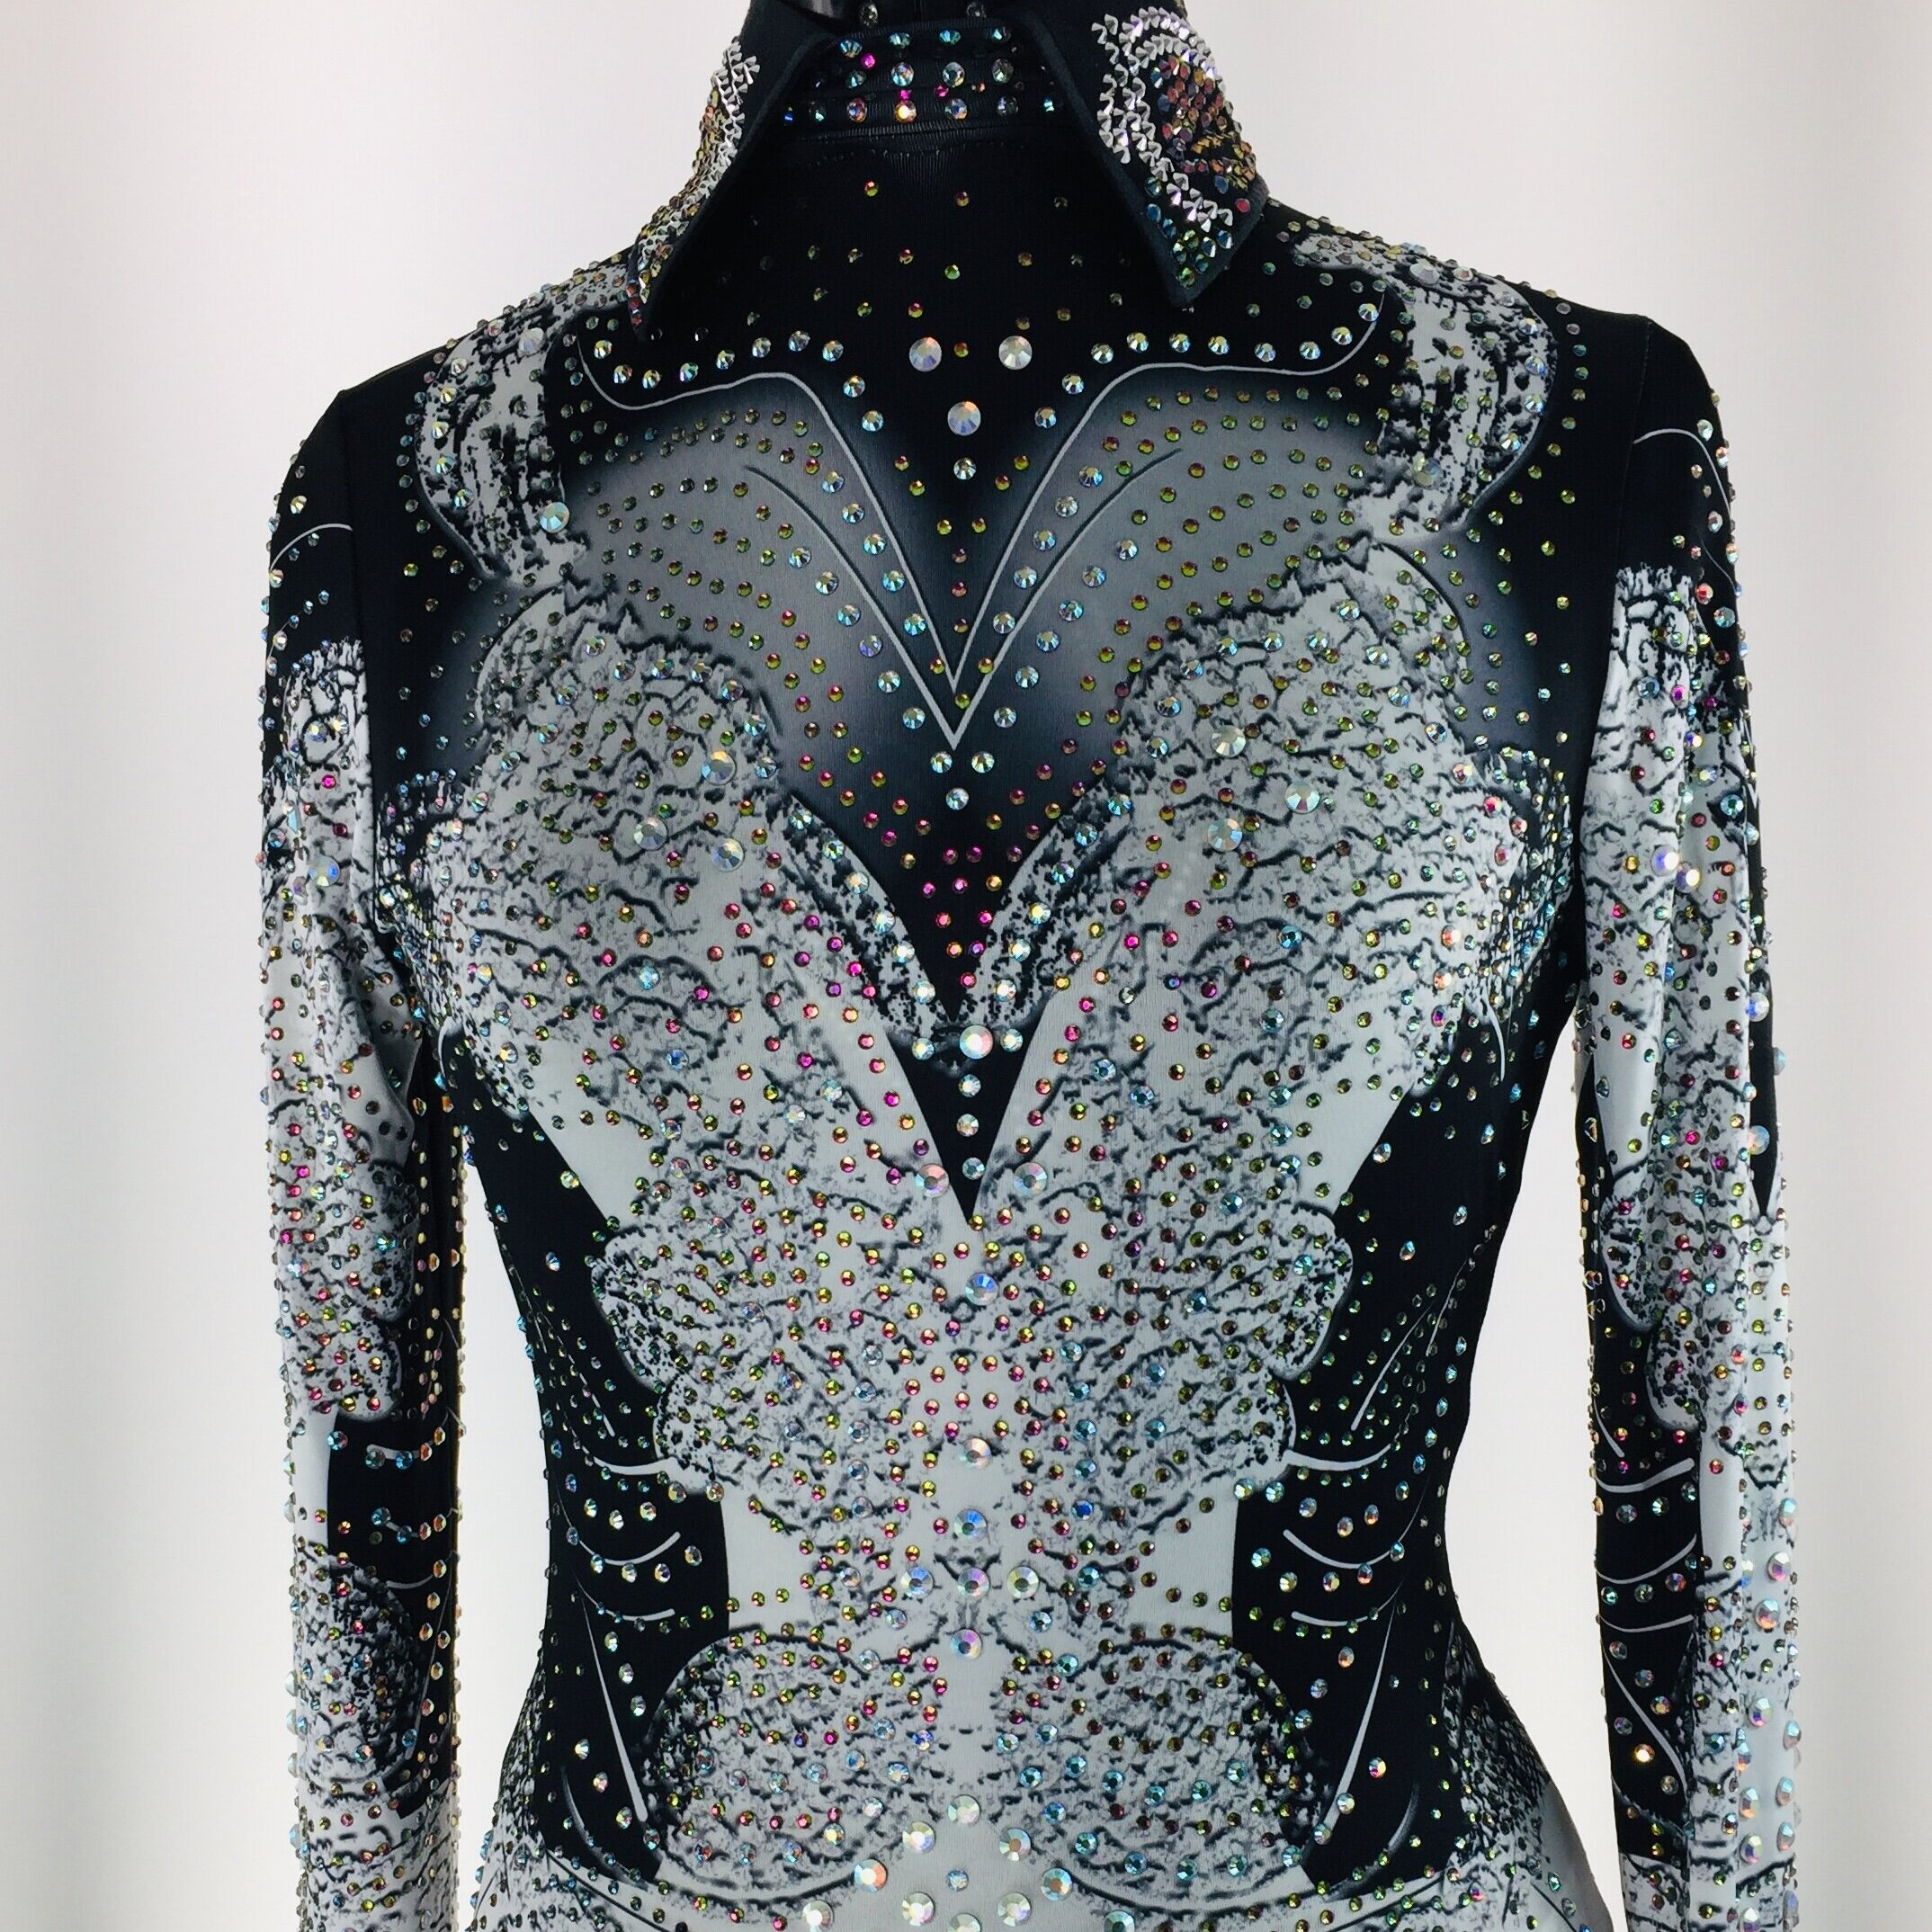 sparkle-ridge-western-show-clothes-shades-of-grey-horse-show-shirts-western-pleasure-show-clothing-and-apparel6.jpg